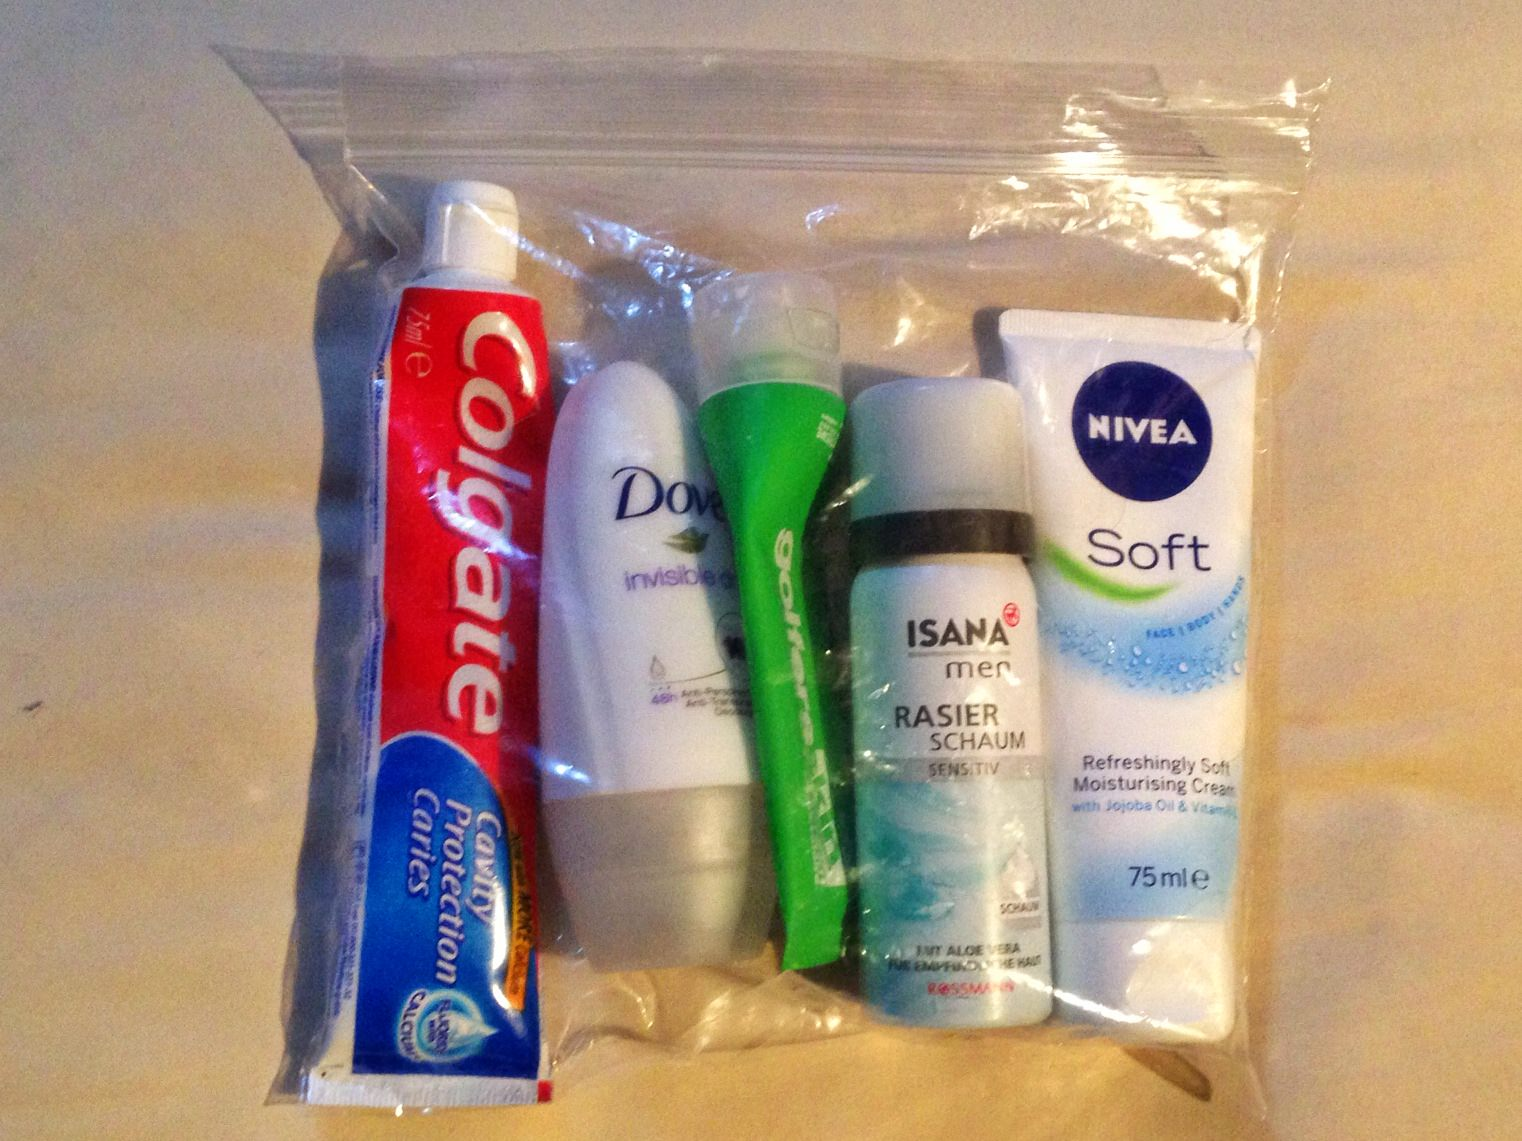 Small toiletries in a plastic bag for flights.